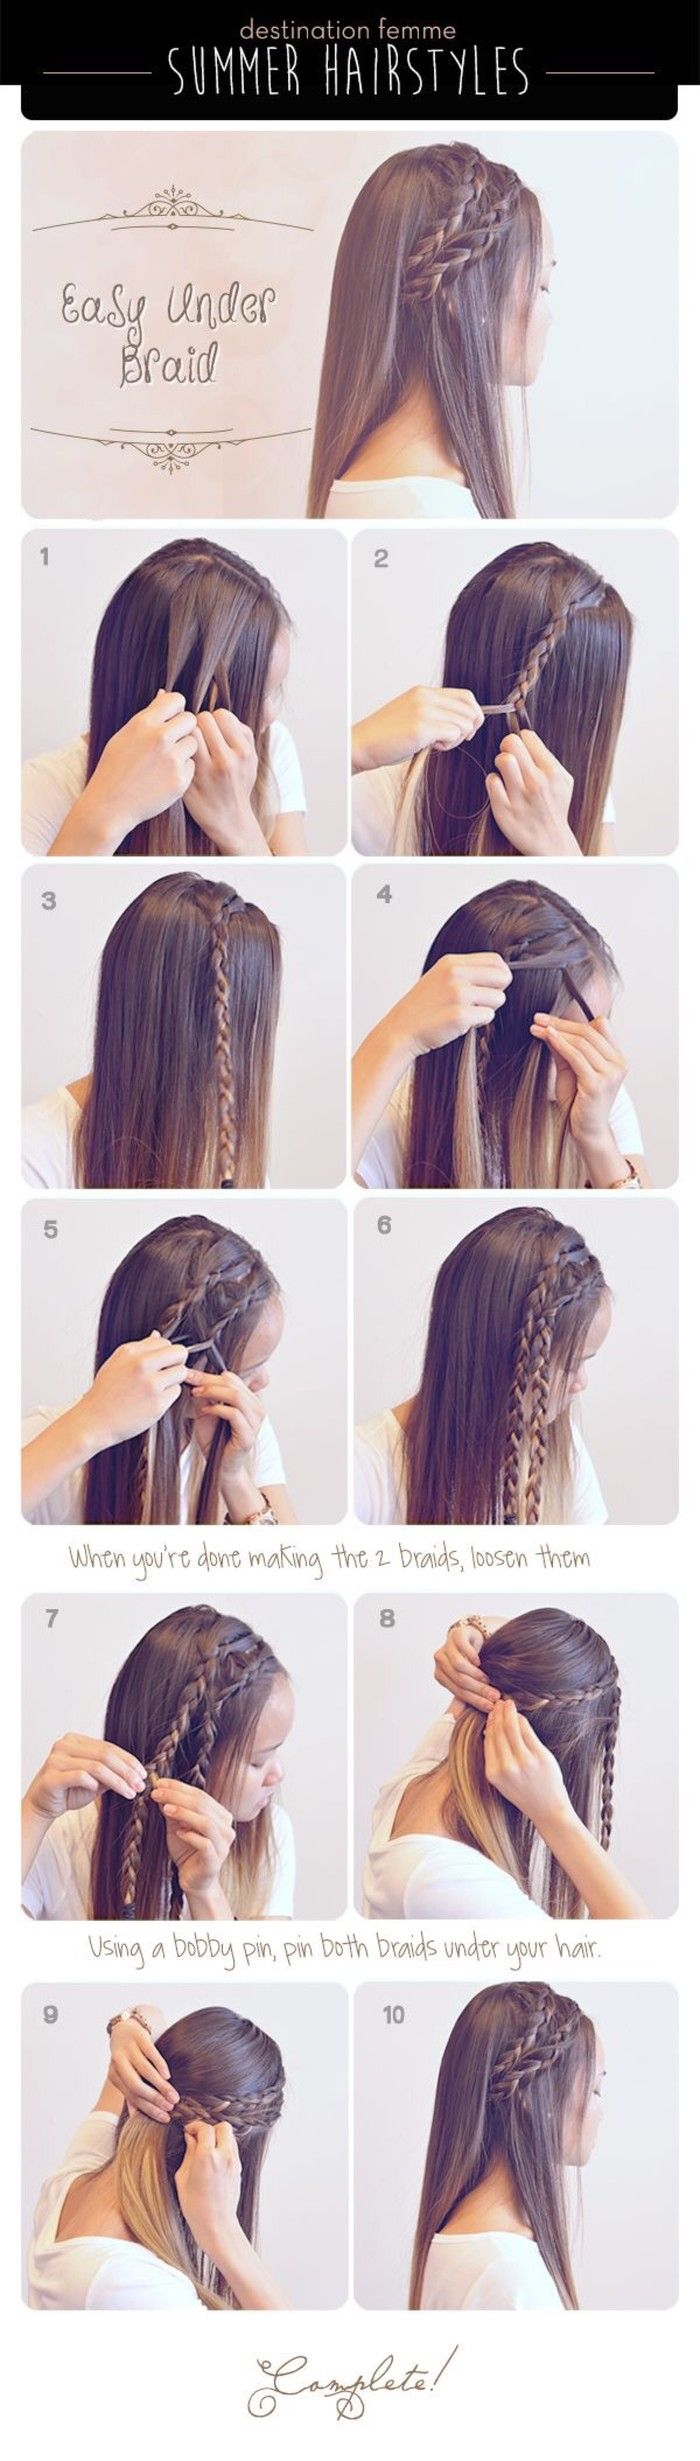 easy hairstyle for medium hair